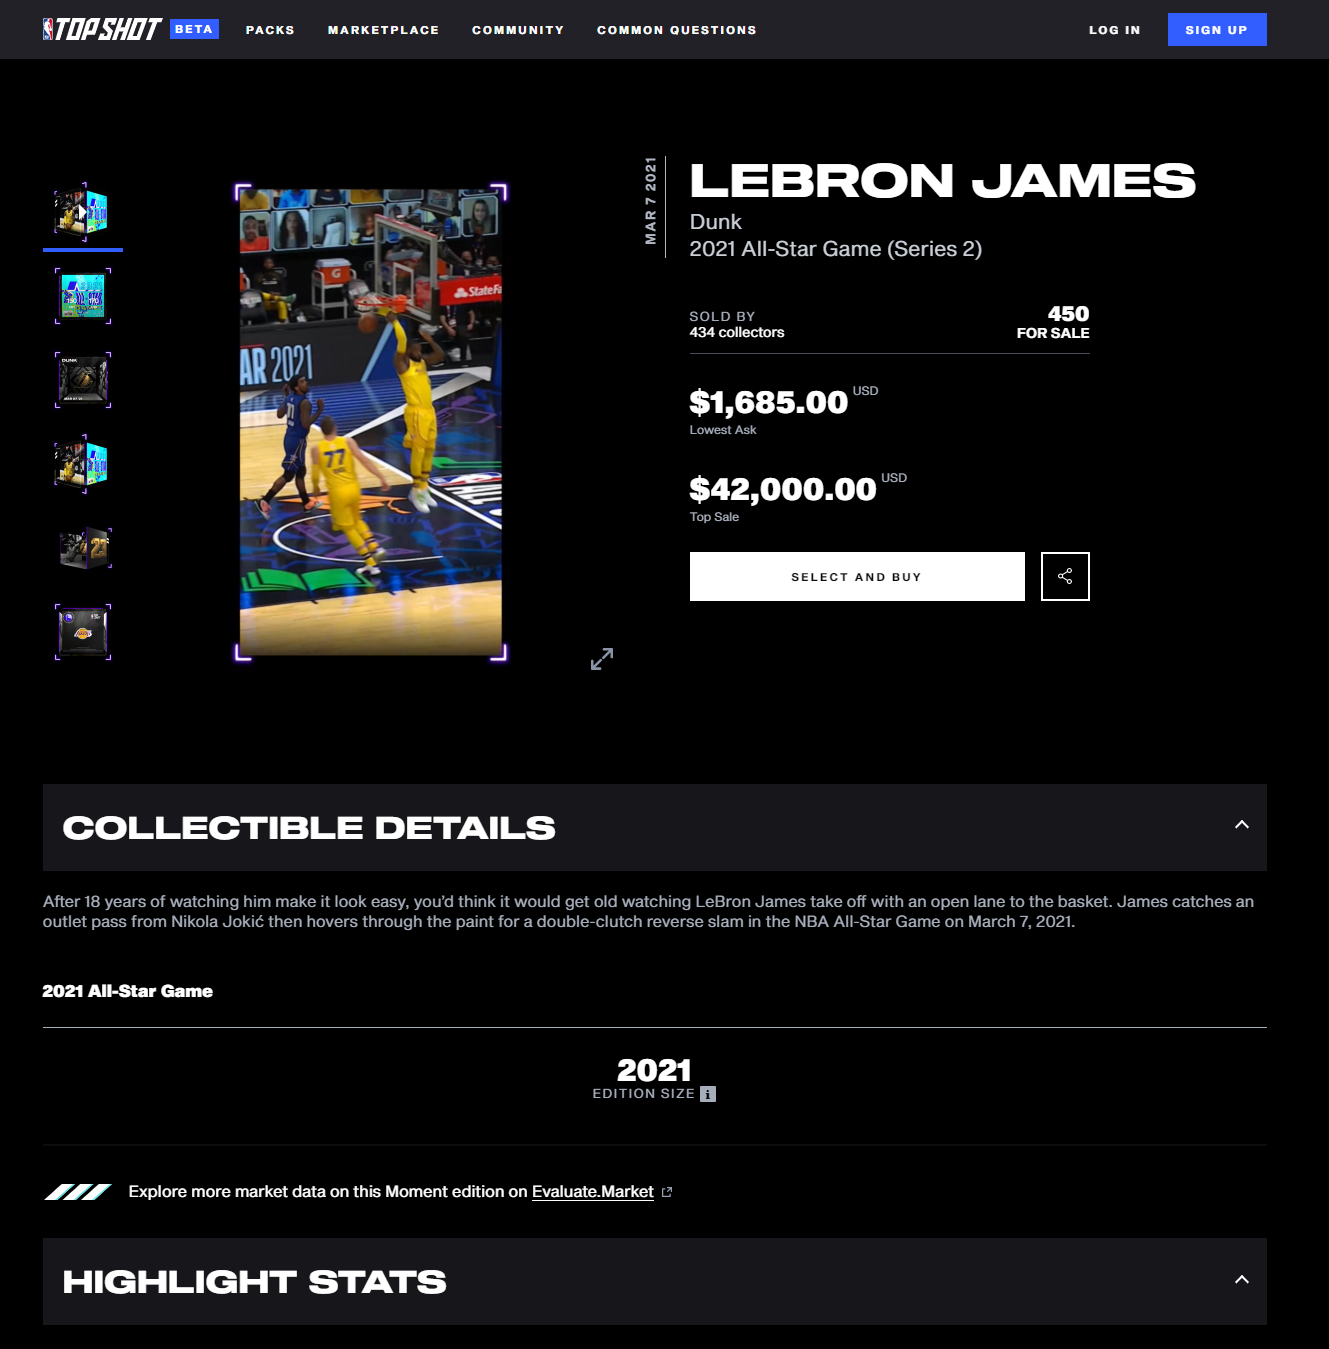 NBA Top Shot Marketplace Specific Layout